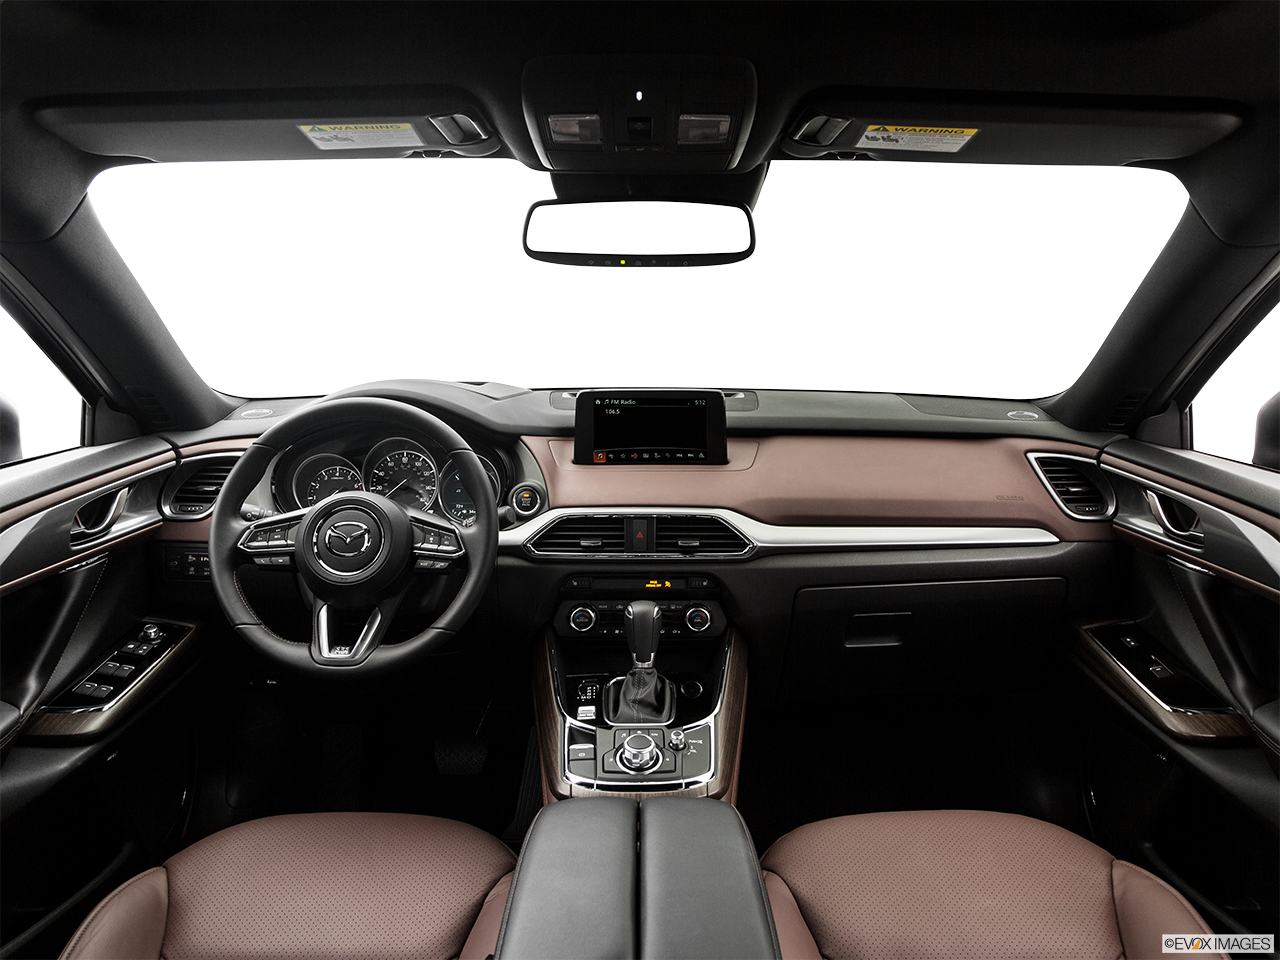 Interior View Of 2016 MAZDA CX-9 in Los Angeles